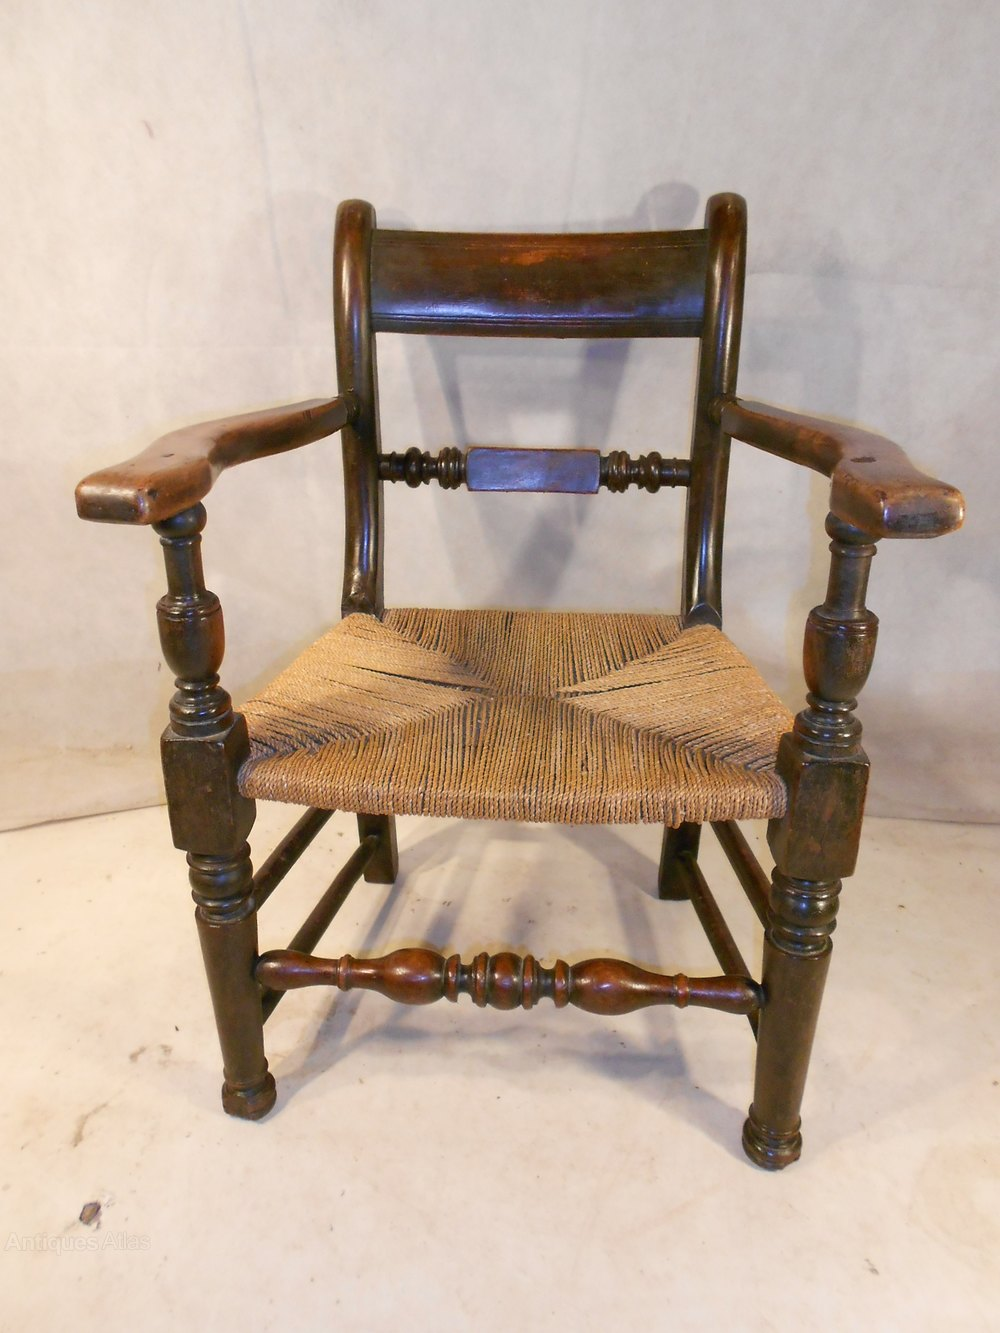 z shaped high chair car seat office chairs uk antique oxford / thames valley elbow - antiques atlas